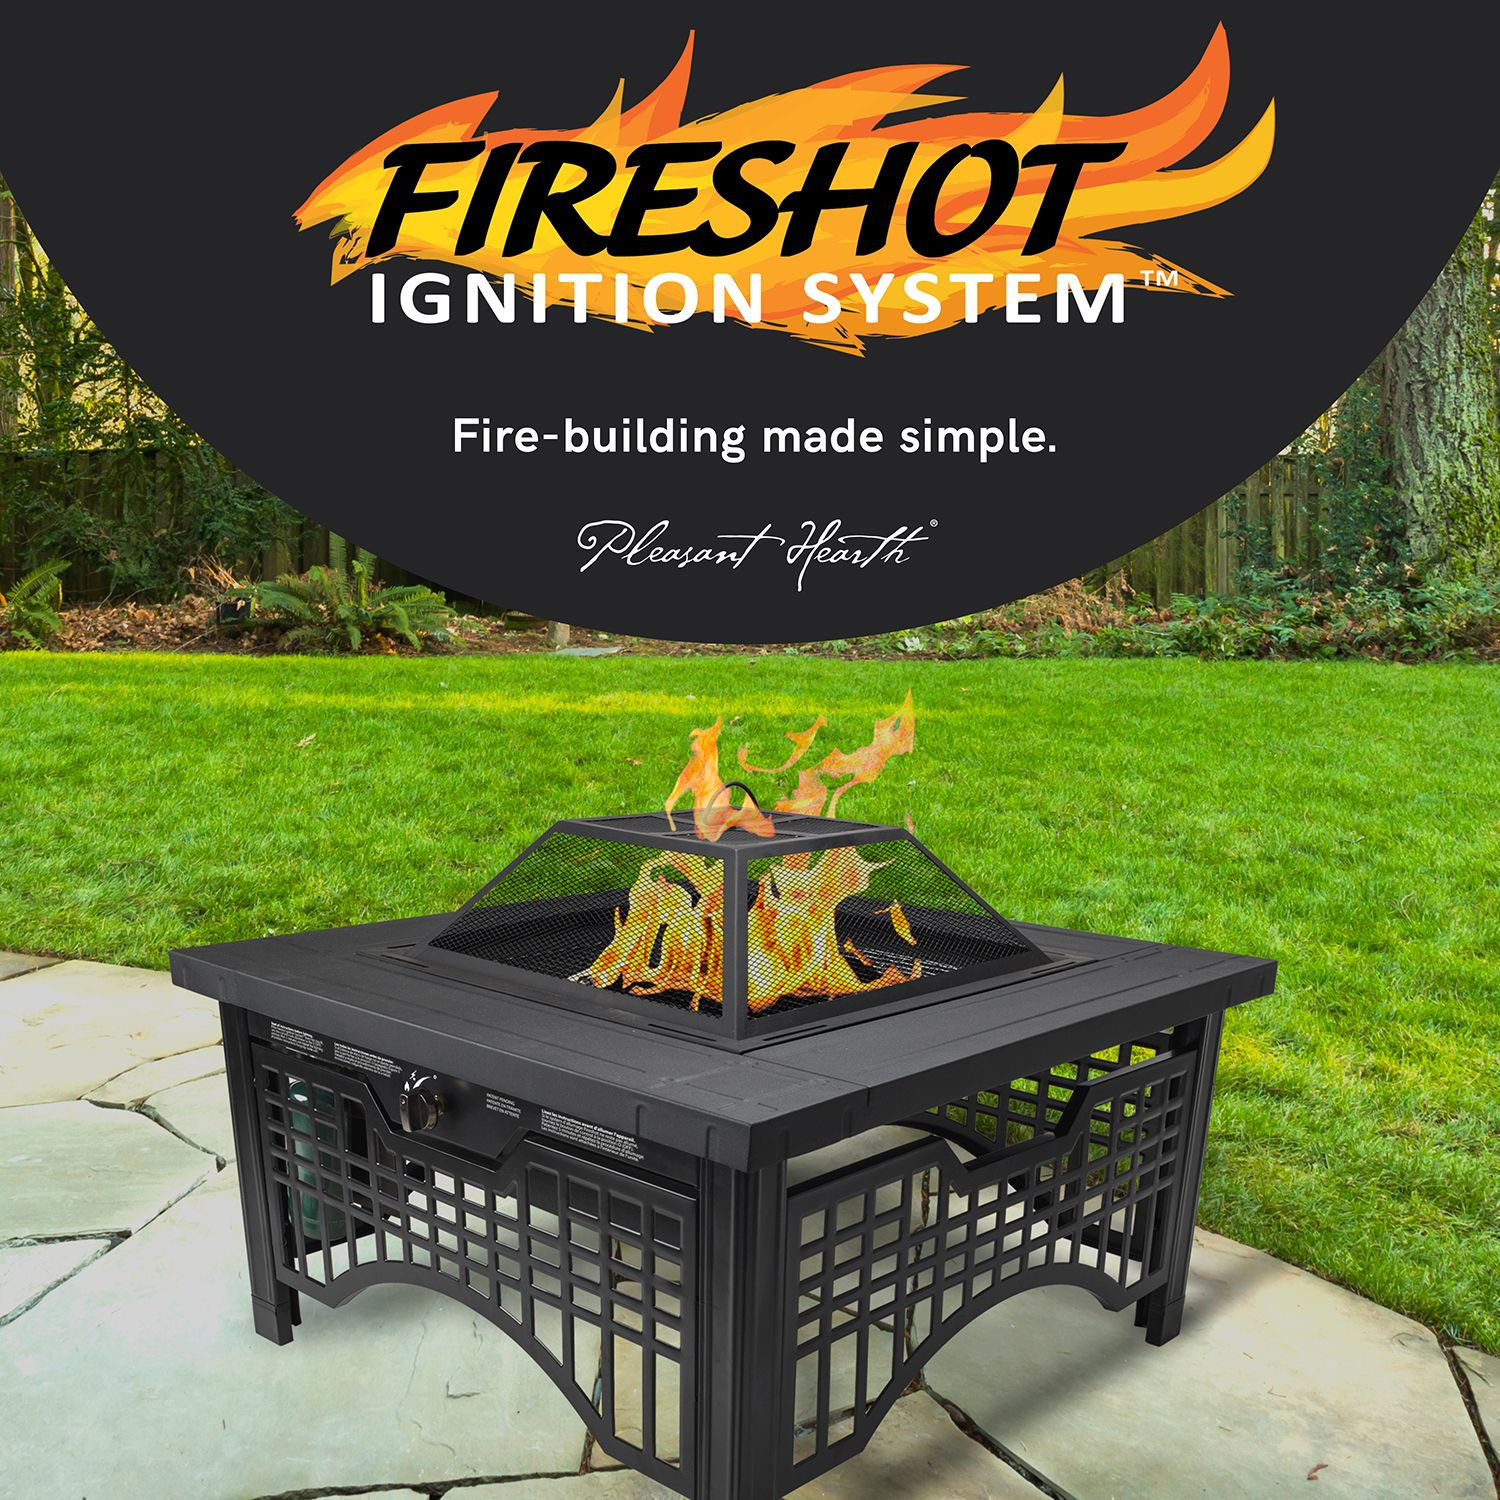 Pleasant Hearth Dakota Wood Burning Fire Pit Barbeque